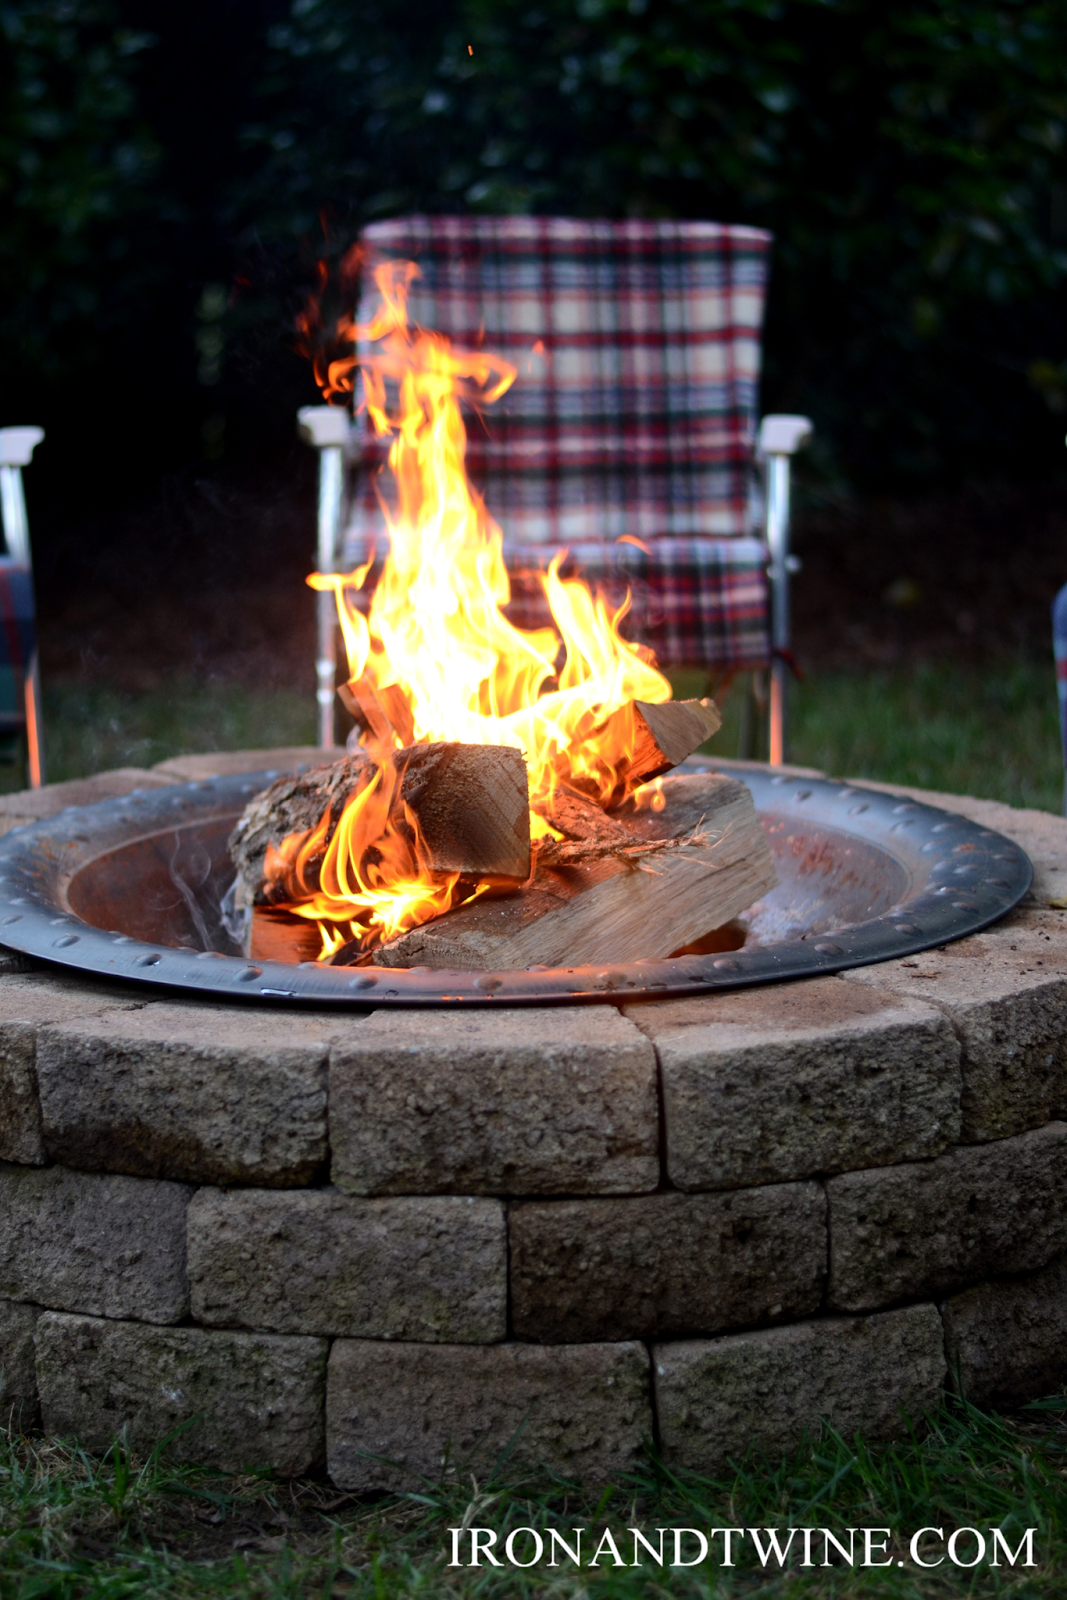 how to build a fire pit Make a fire pit, How to build a